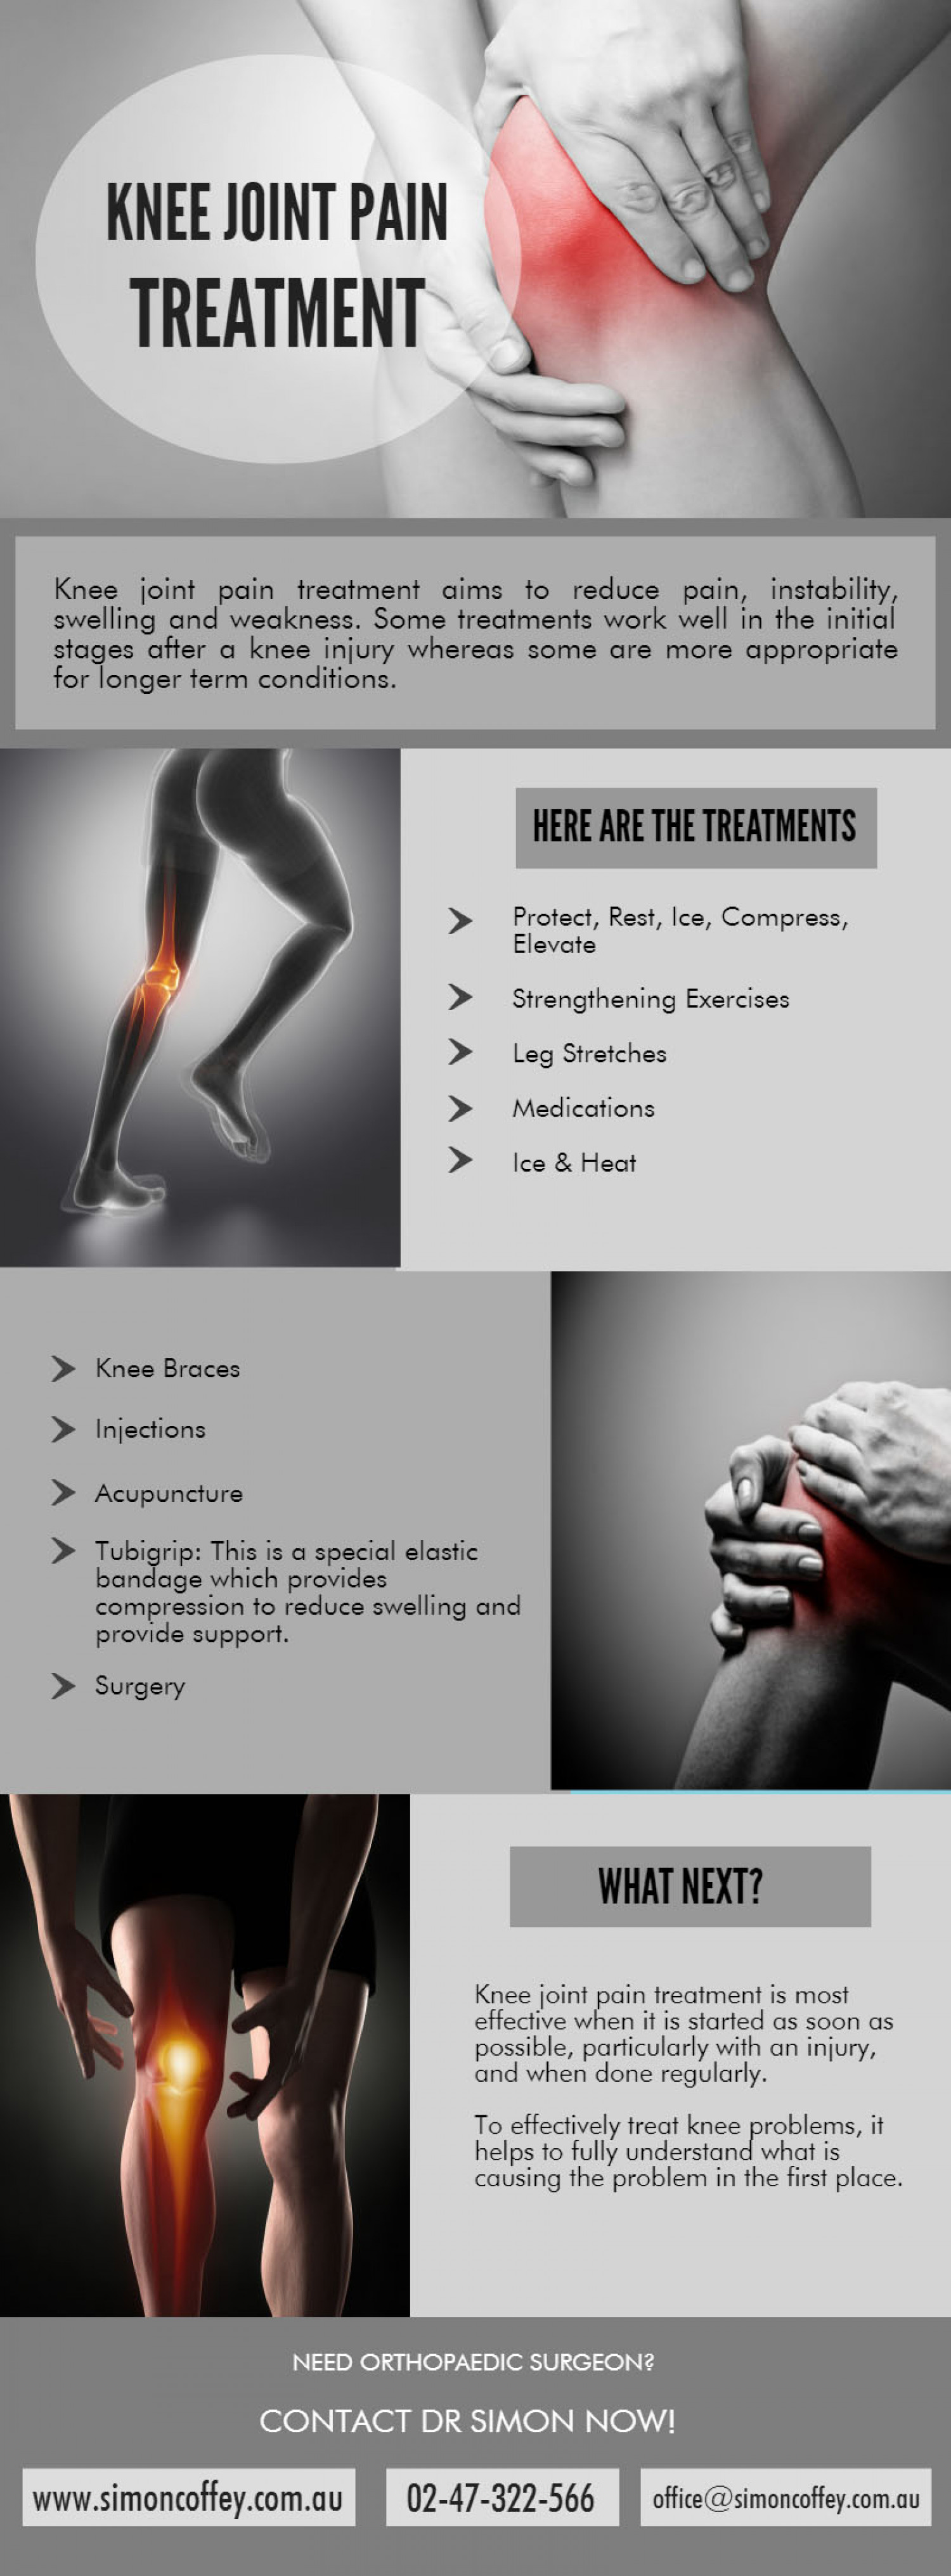 Knee Replacement Joint Pain Treatment - Dr. Simon Coffey Infographic